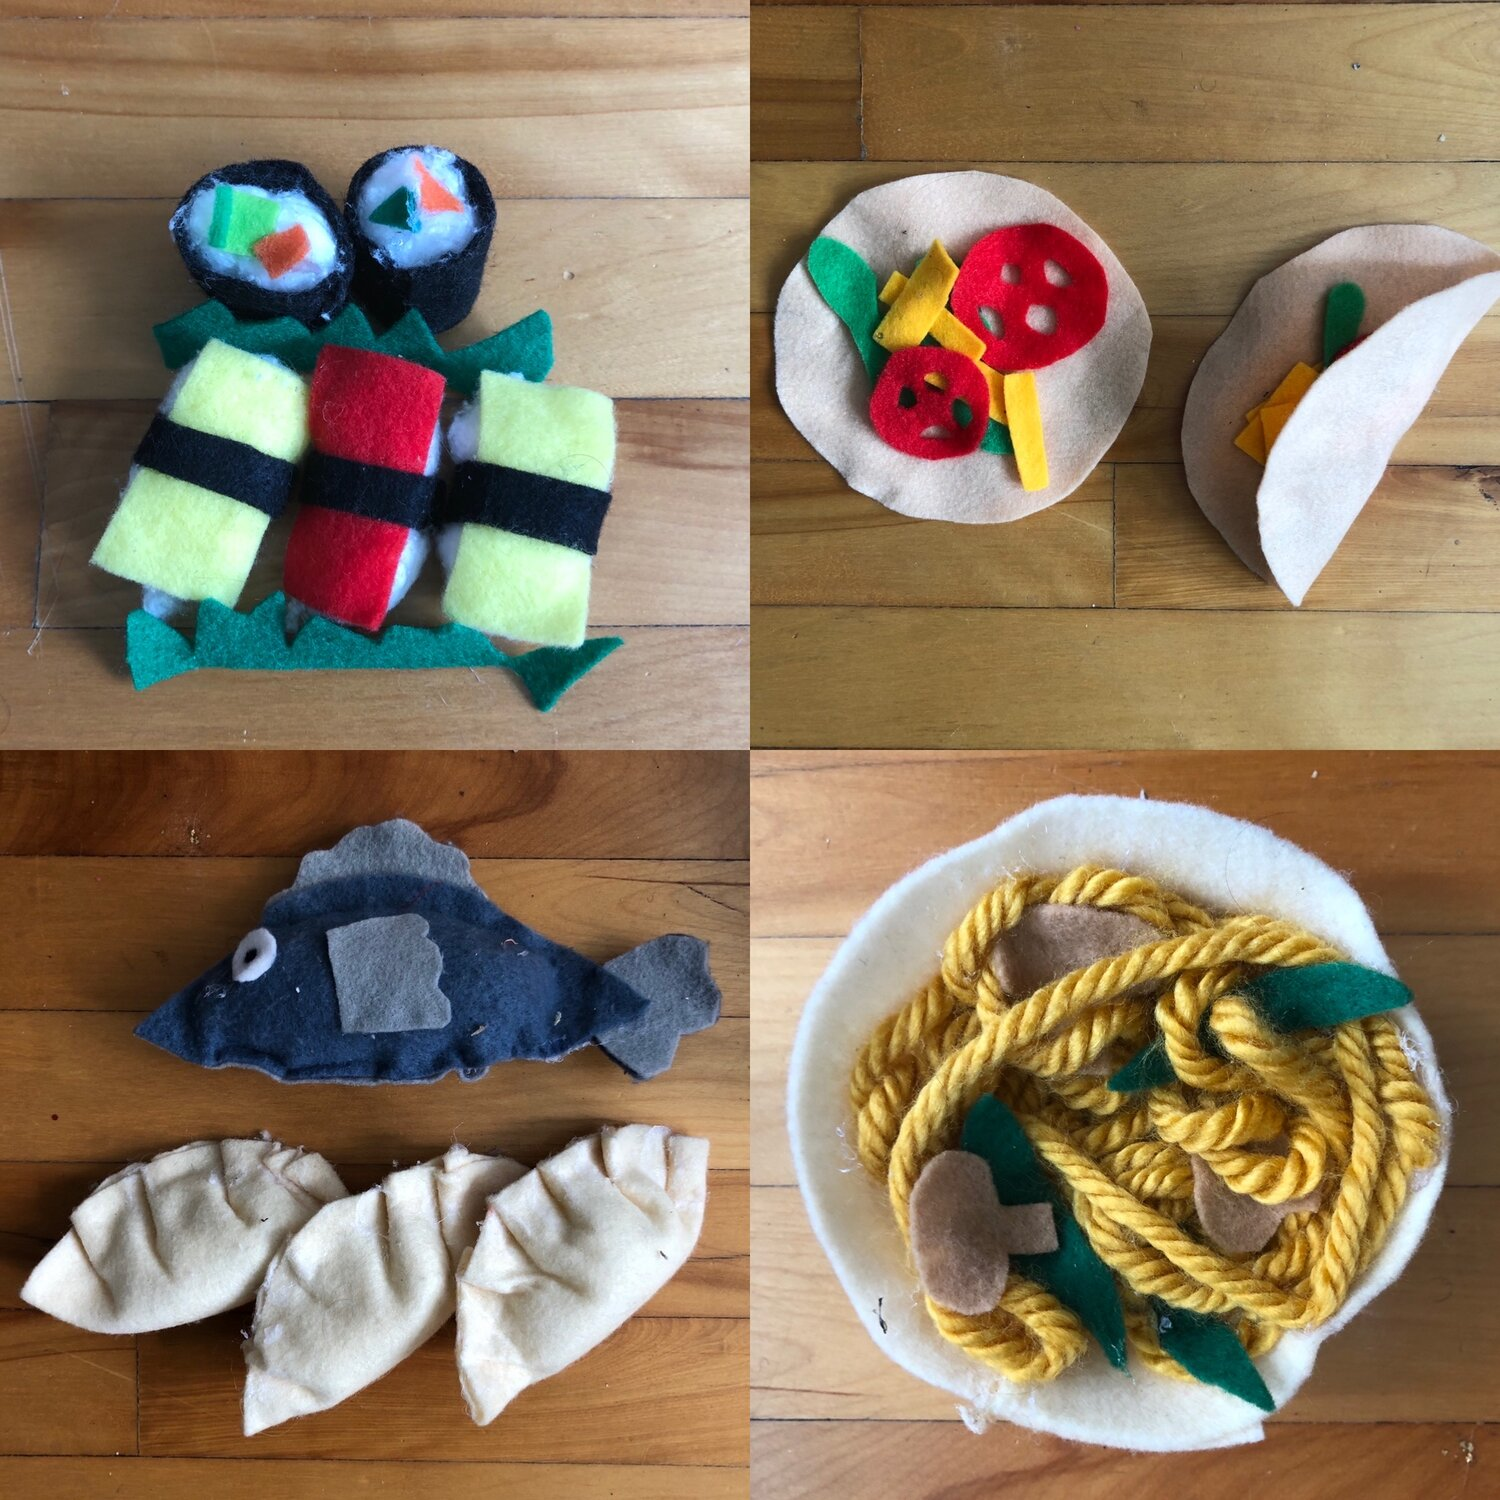 [Image Description: Top Left: Felt sushi including two maki rolls and three nigiri rolls. Top Right: Tow felt tortillas with felt tomatoes, cheese, and lettuce. Bottom Left: Three felt gyoza (dumplings) and one felt fish. Bottom Right: Felt bowl with yarn noodles and felt mushrooms and bok choy.]